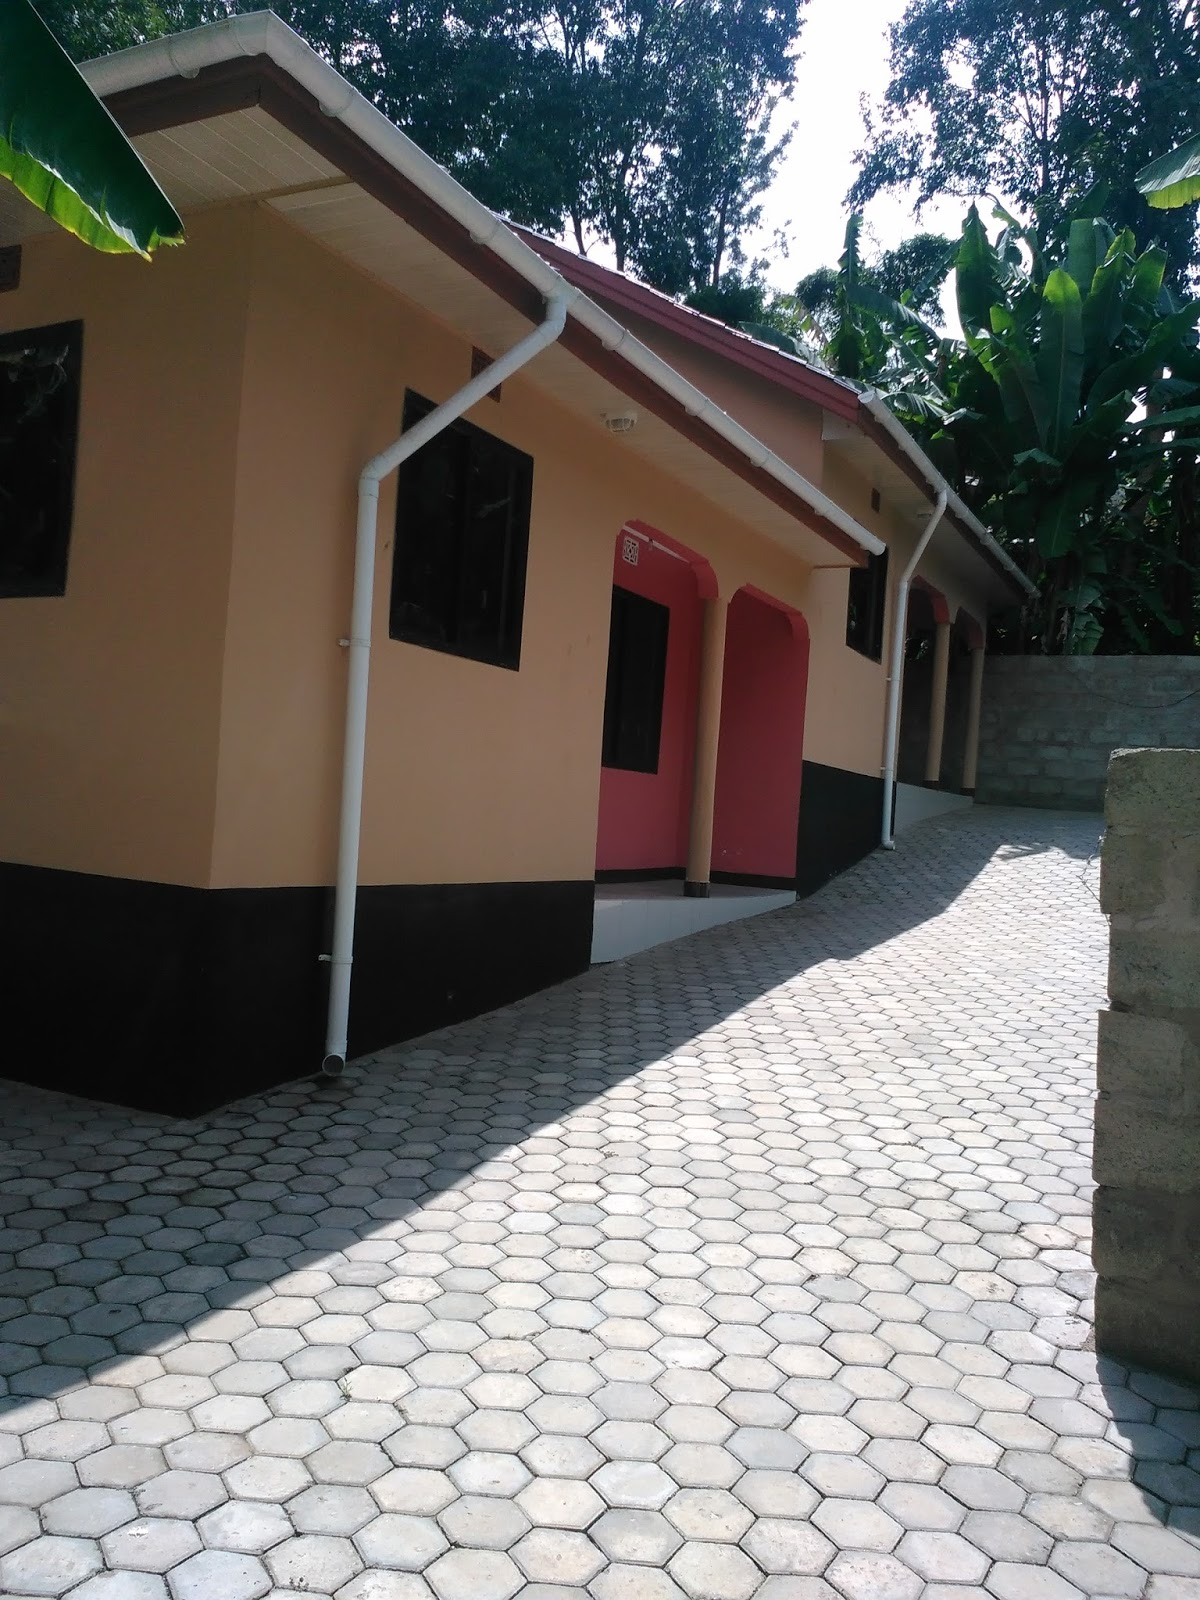 Rent house in tanzania arusha rent houses houses for sale for 9 bedroom house for rent